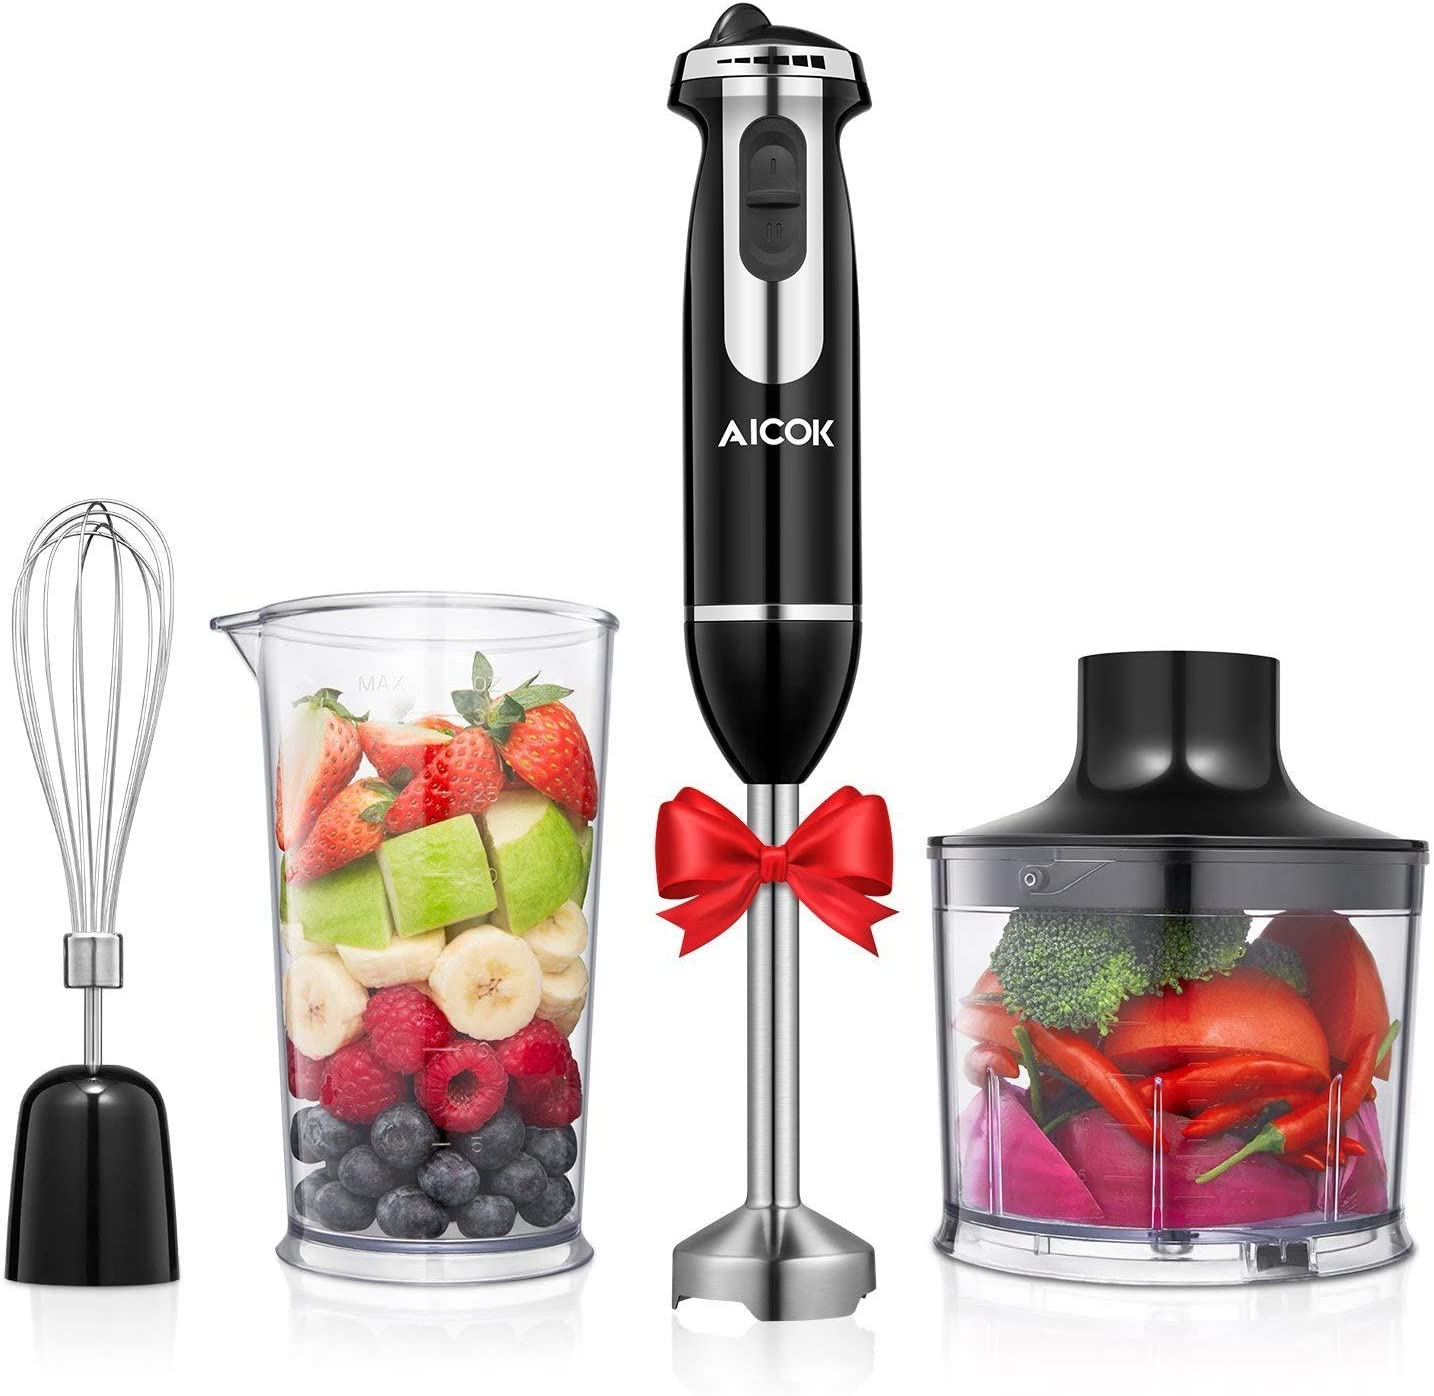 Aicok Hand Blender, 4 in 1 Immersion Blender with Mixing Beaker(800ml), Chopper, and Whisk, 12-Speeds, Multifunctional Blender with Anti-Splash Blade, BPA Free (Renewed)